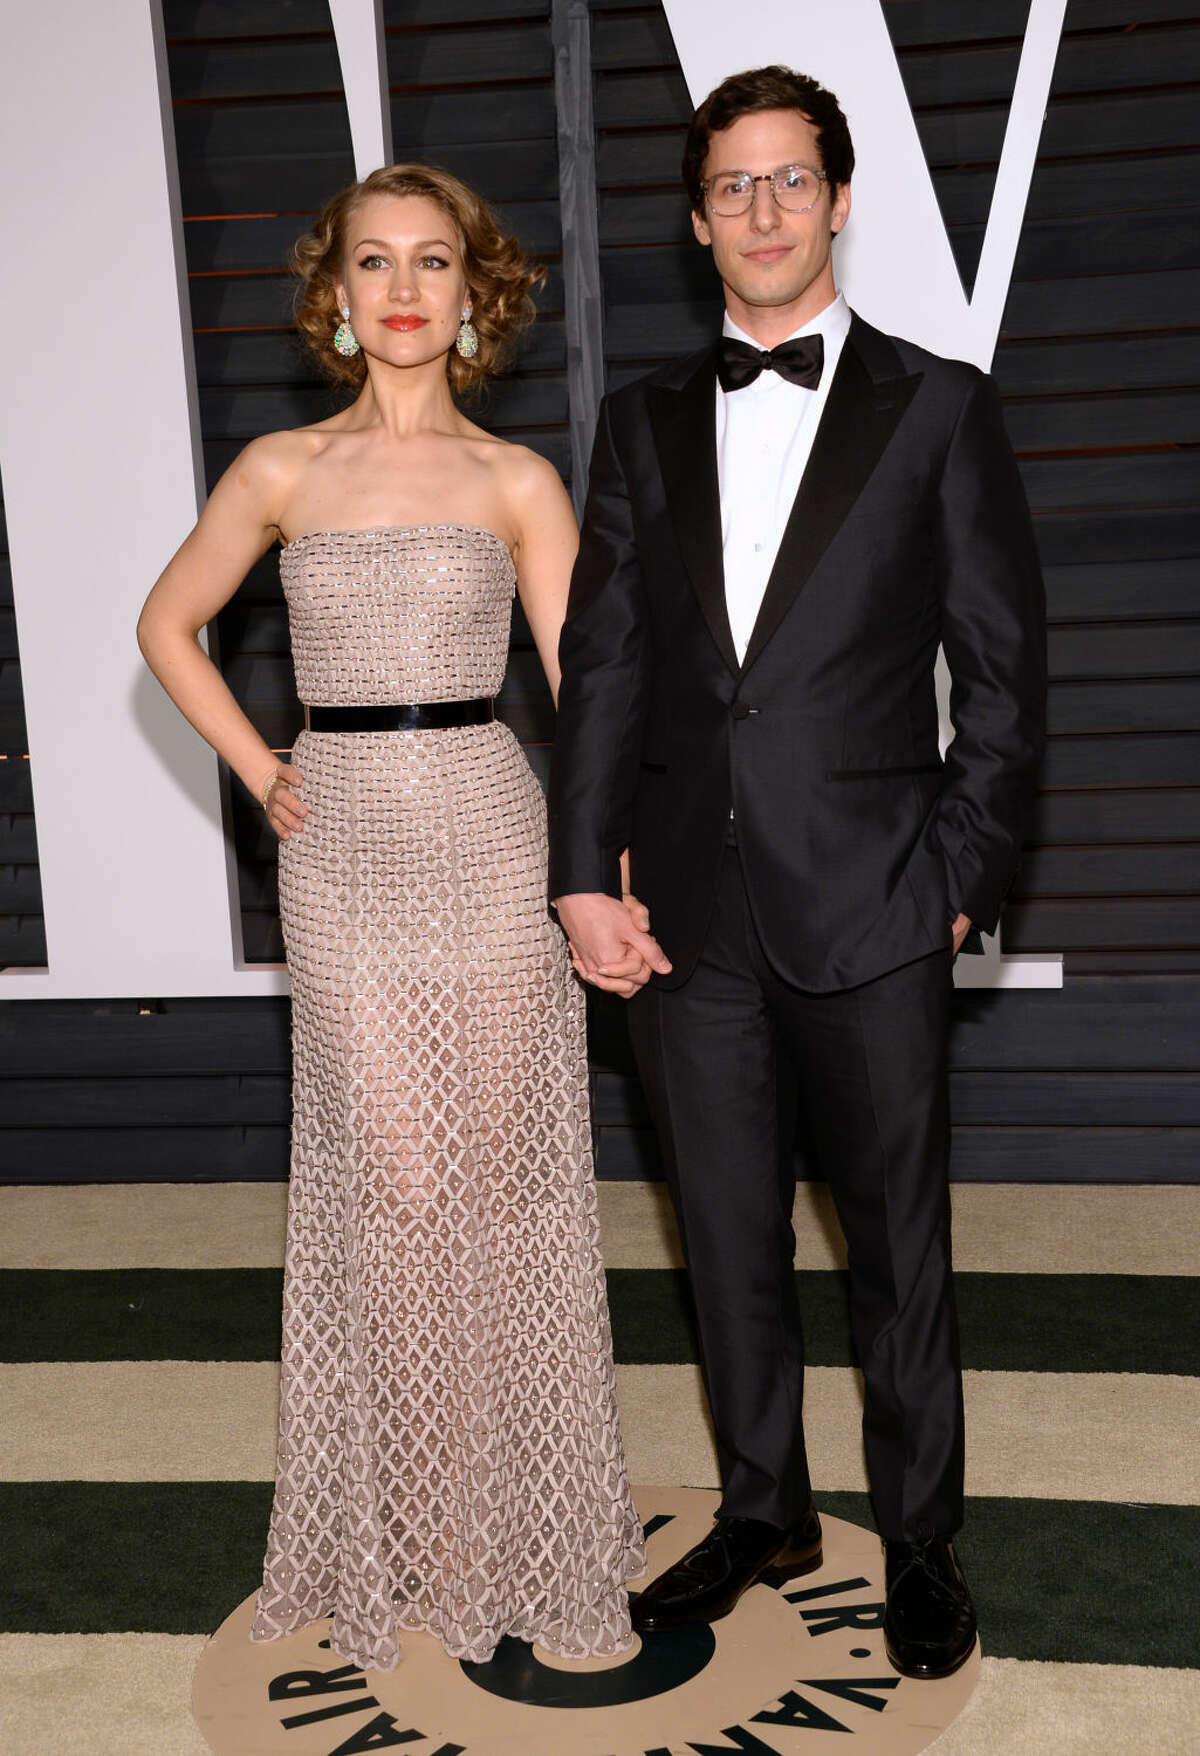 Joanna Newsom, left, and Andy Samberg arrives at the 2015 Vanity Fair Oscar Party on Sunday, Feb. 22, 2015, in Beverly Hills, Calif. (Photo by Evan Agostini/Invision/AP)